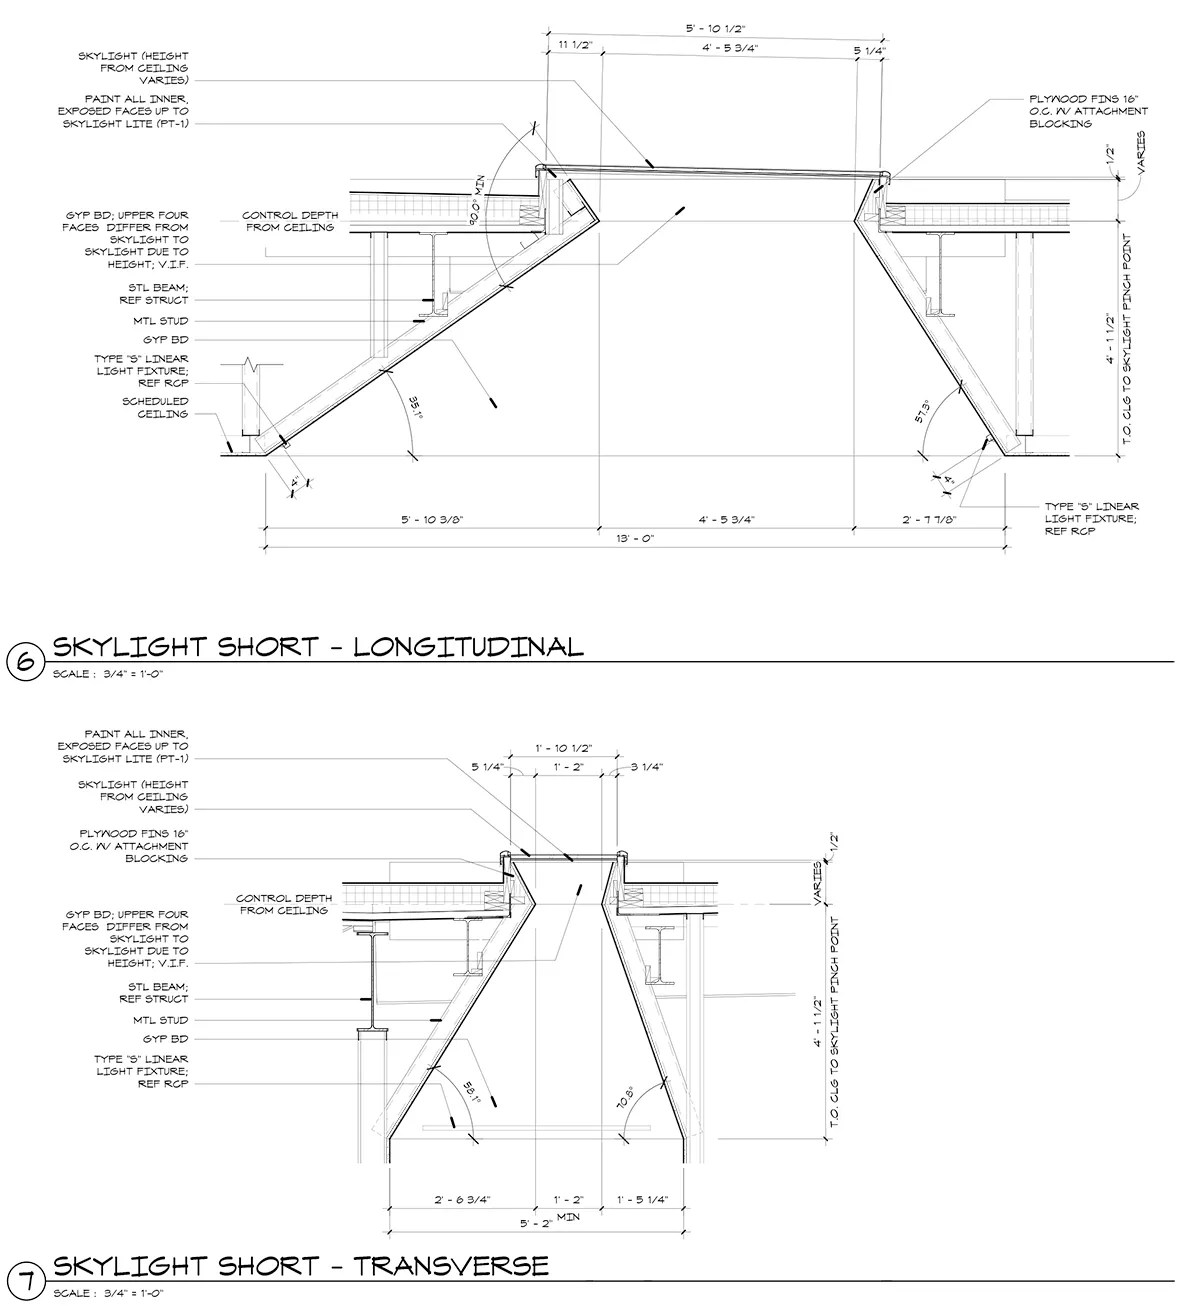 Skylight Detail Sections - Construction Drawings